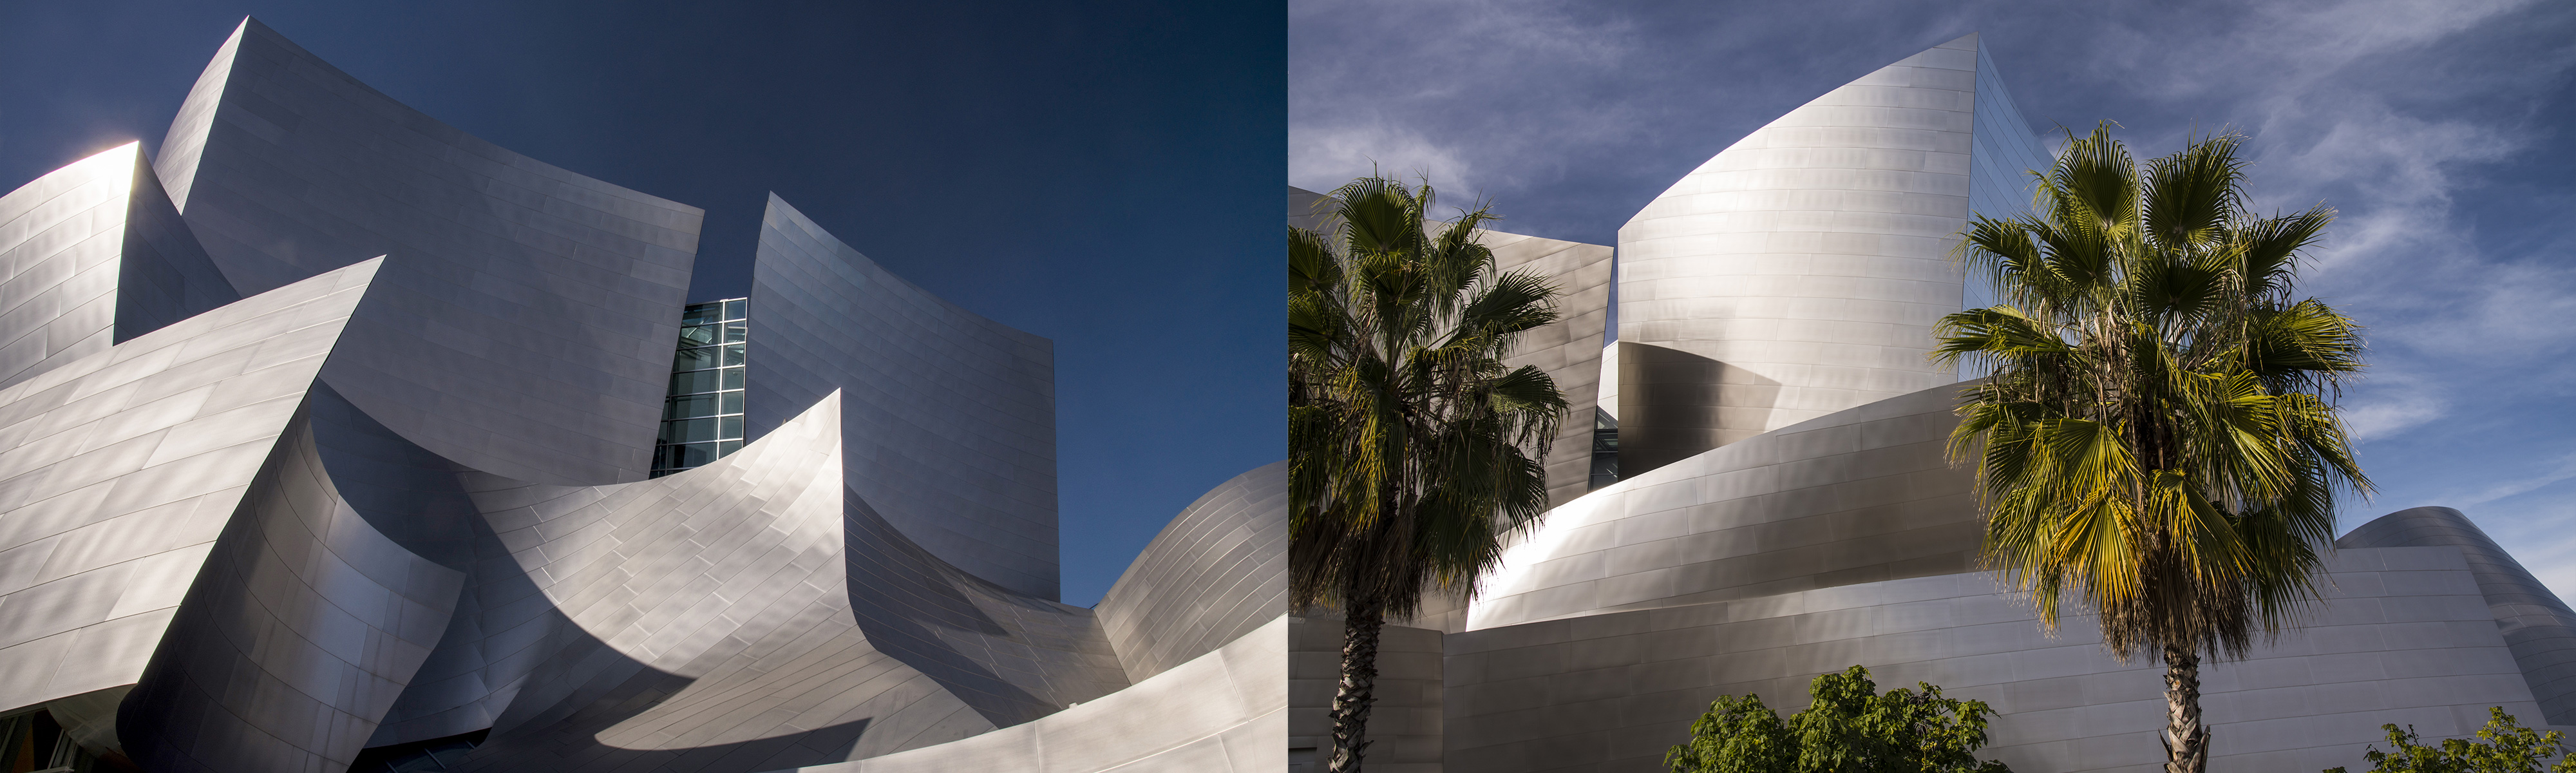 Walt Disney Concert Hall in Los Angeles, by architect Frank Gehry